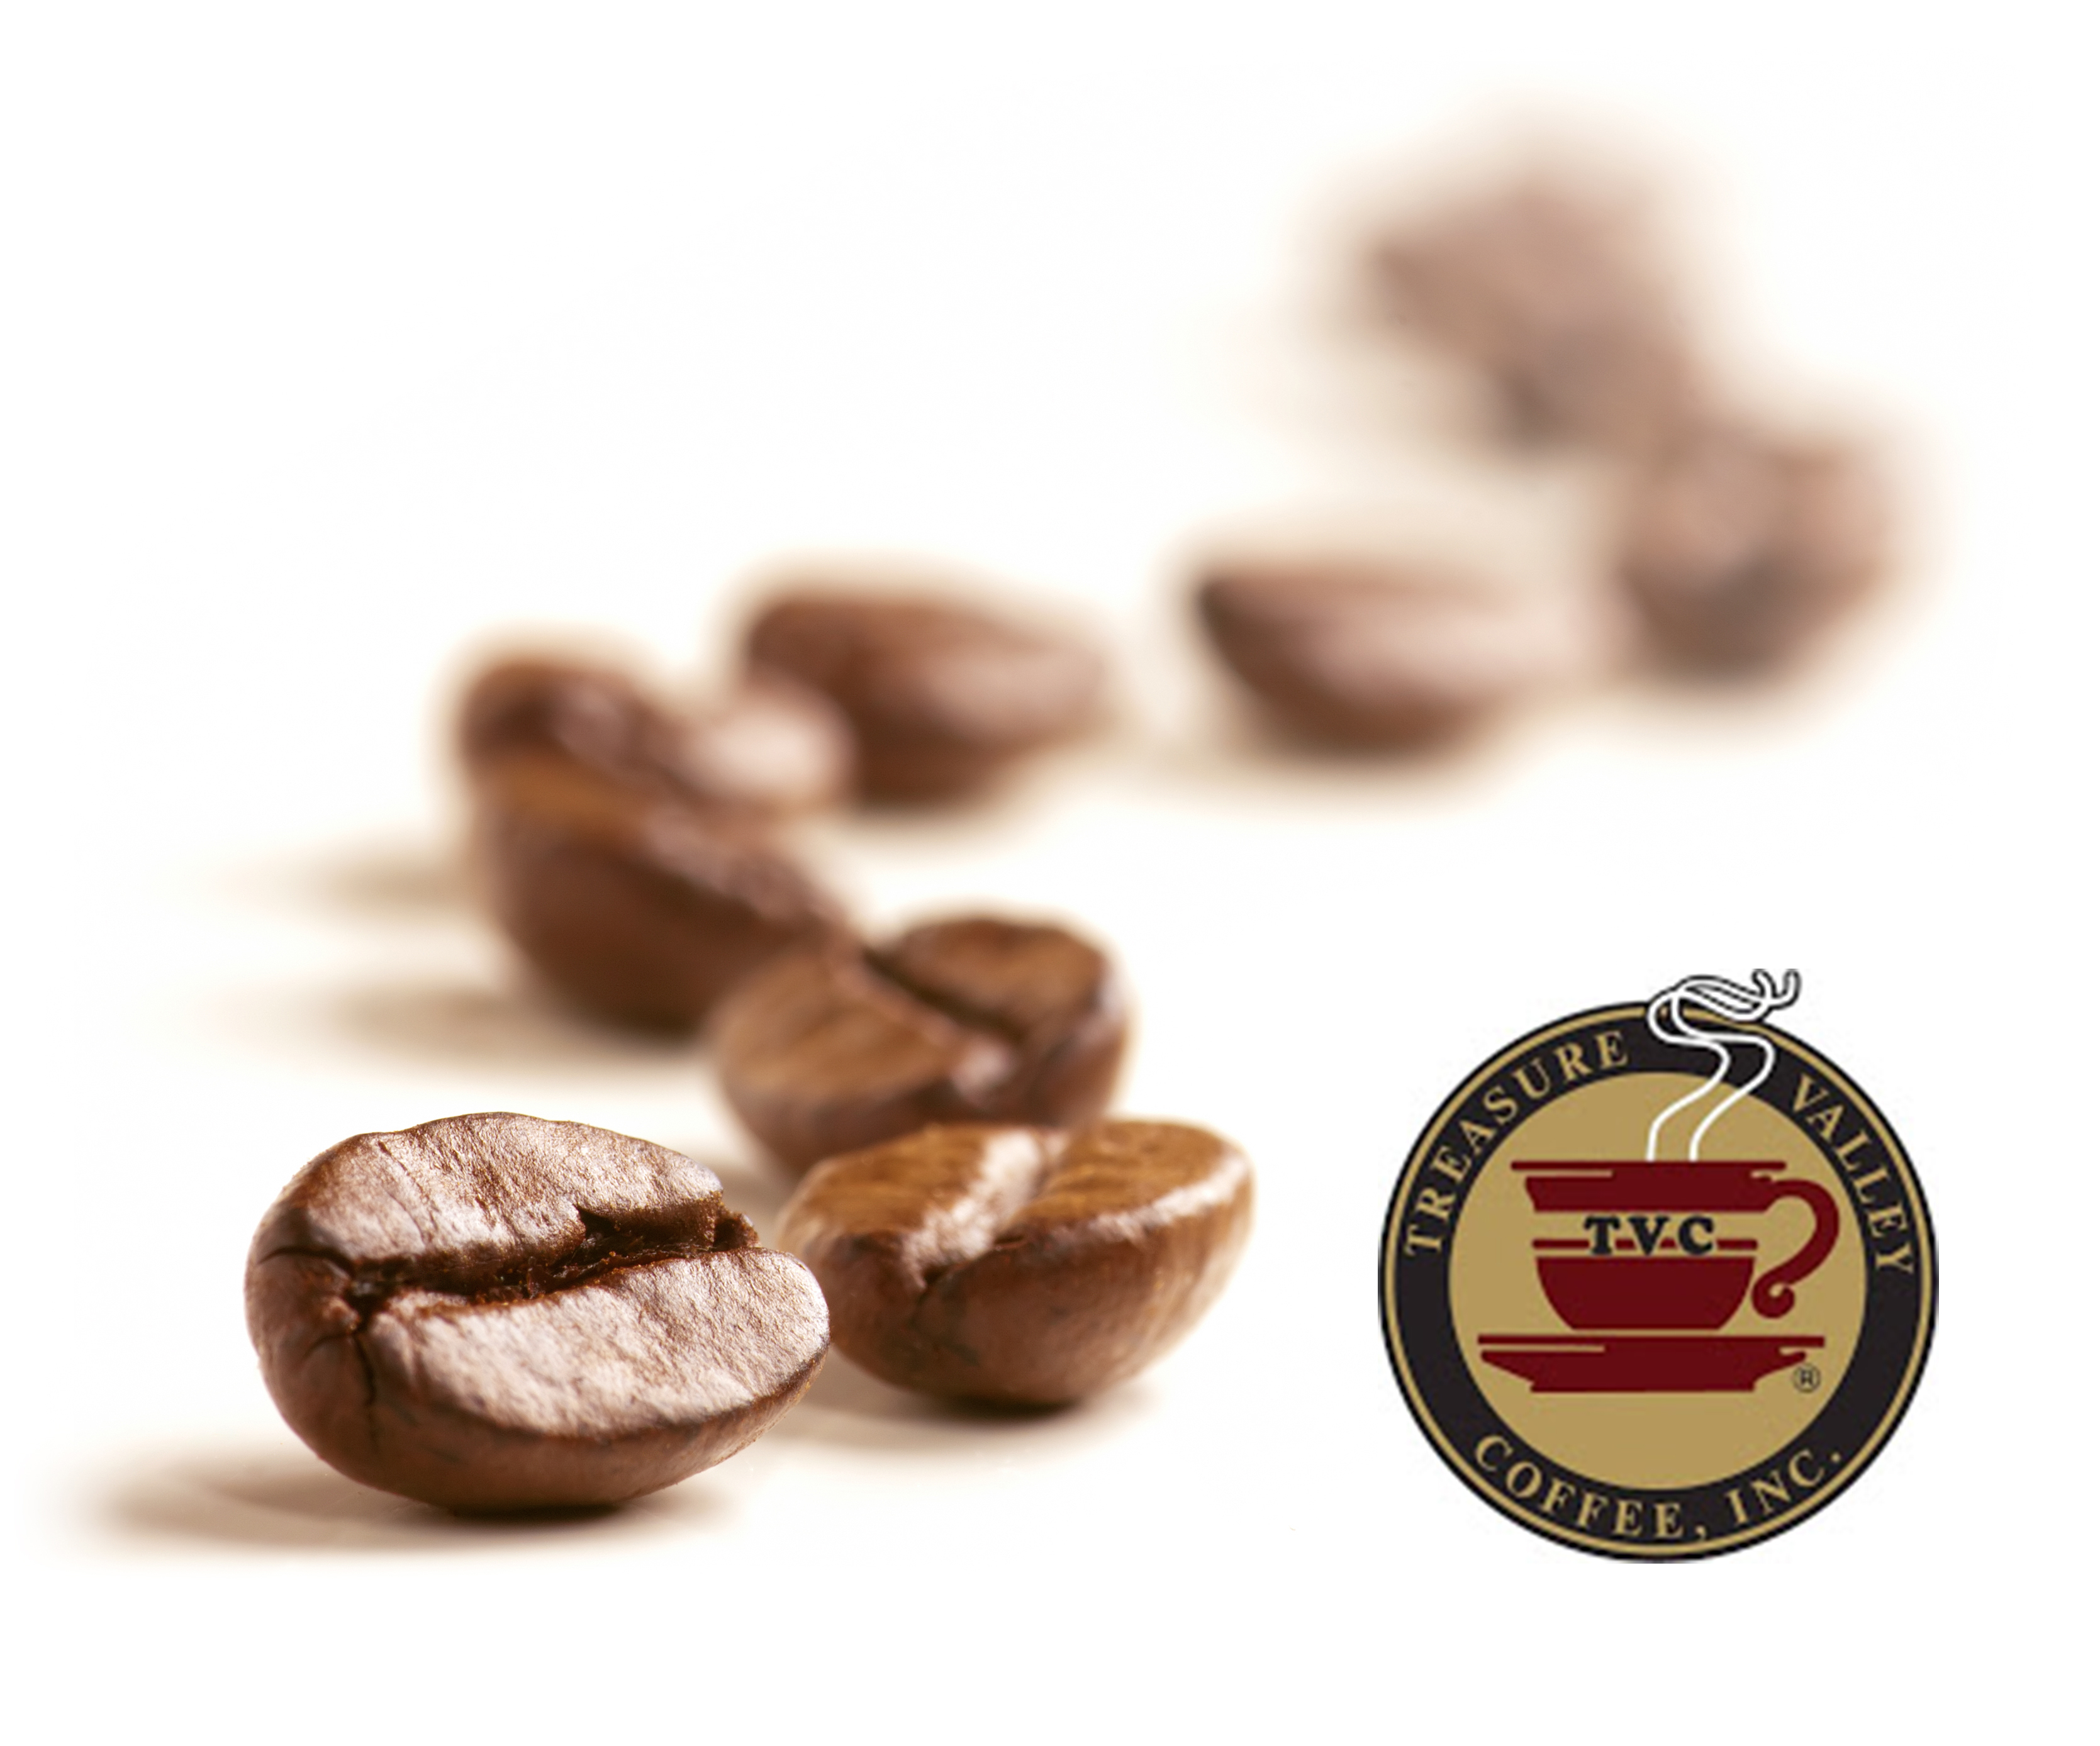 treasure-valley-coffee-logo